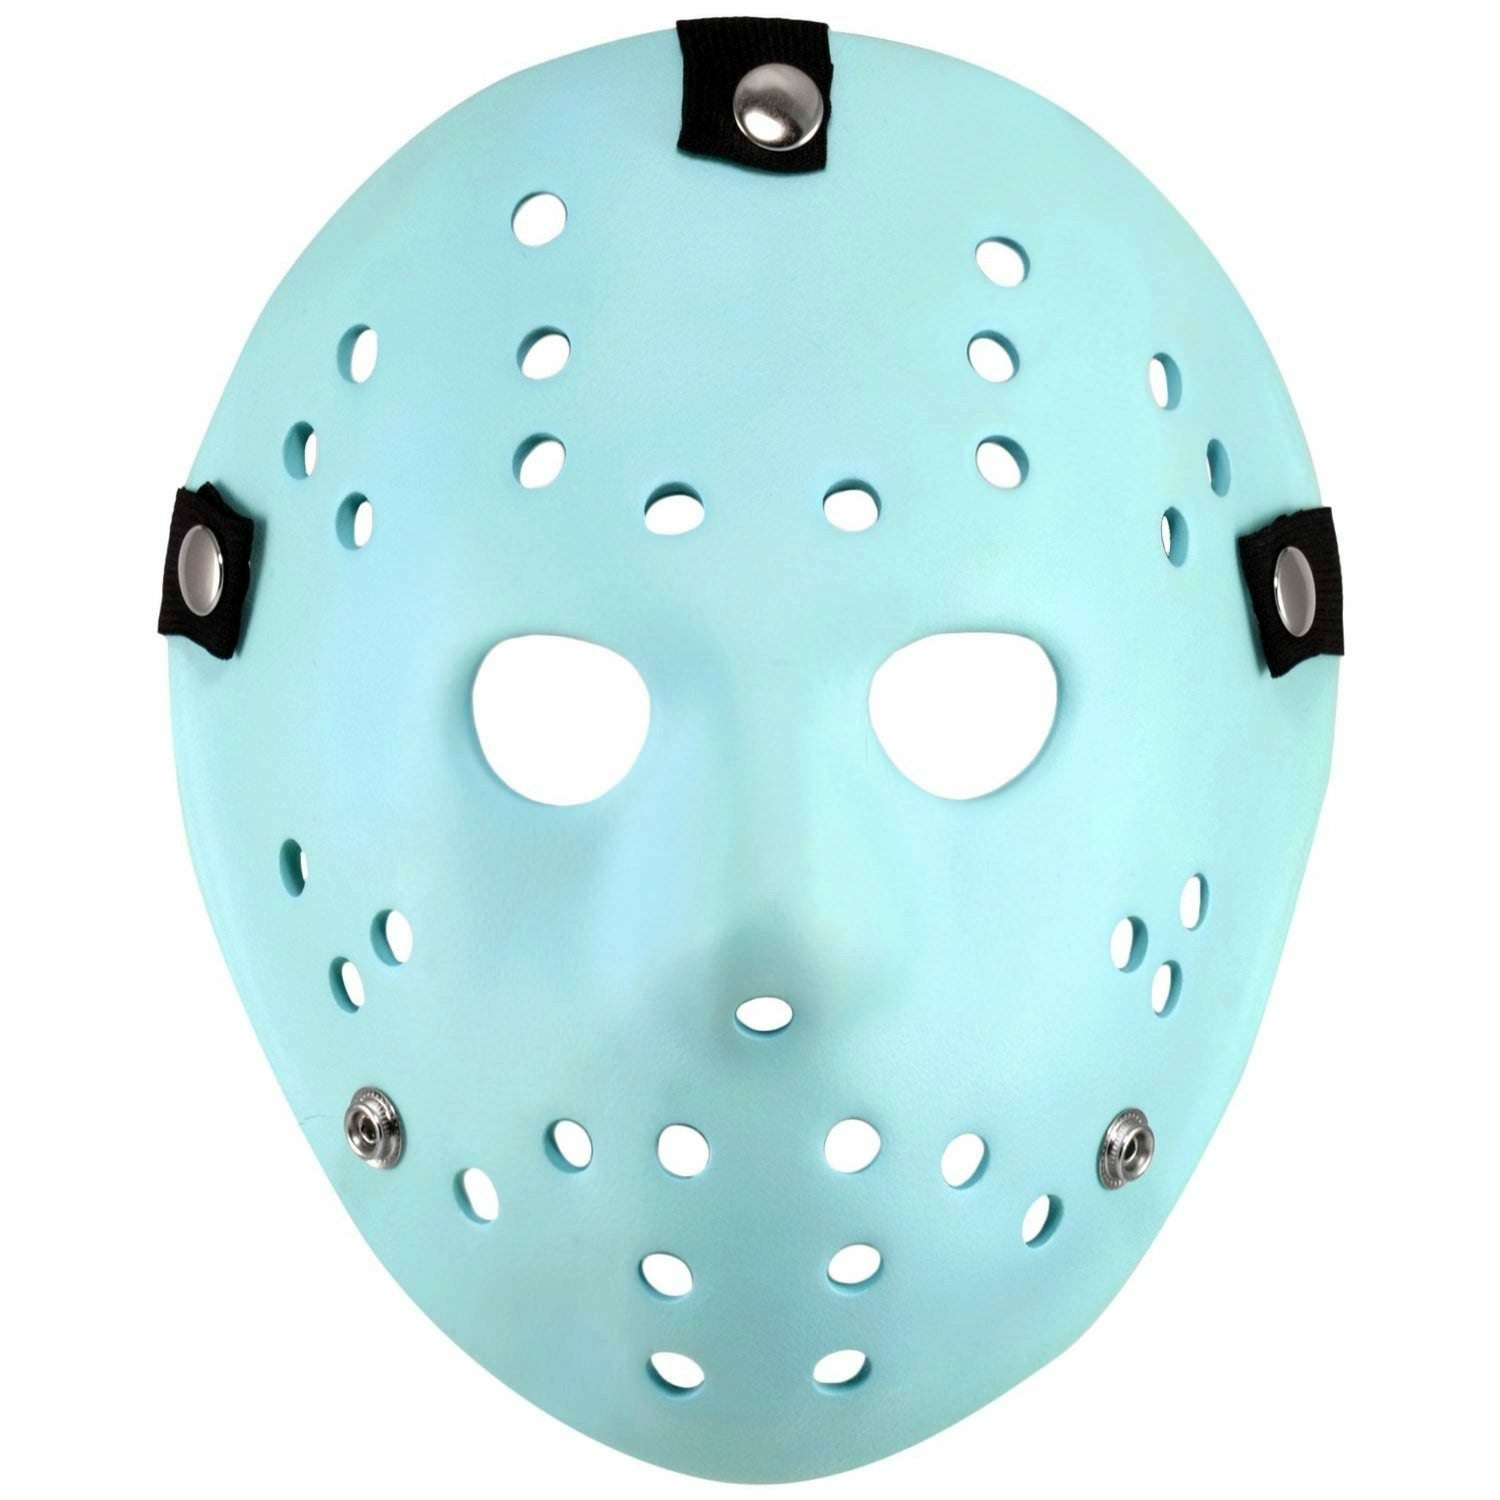 Neca Friday the 13th Jason Mask Glow In The Dark Mask Prop Replica